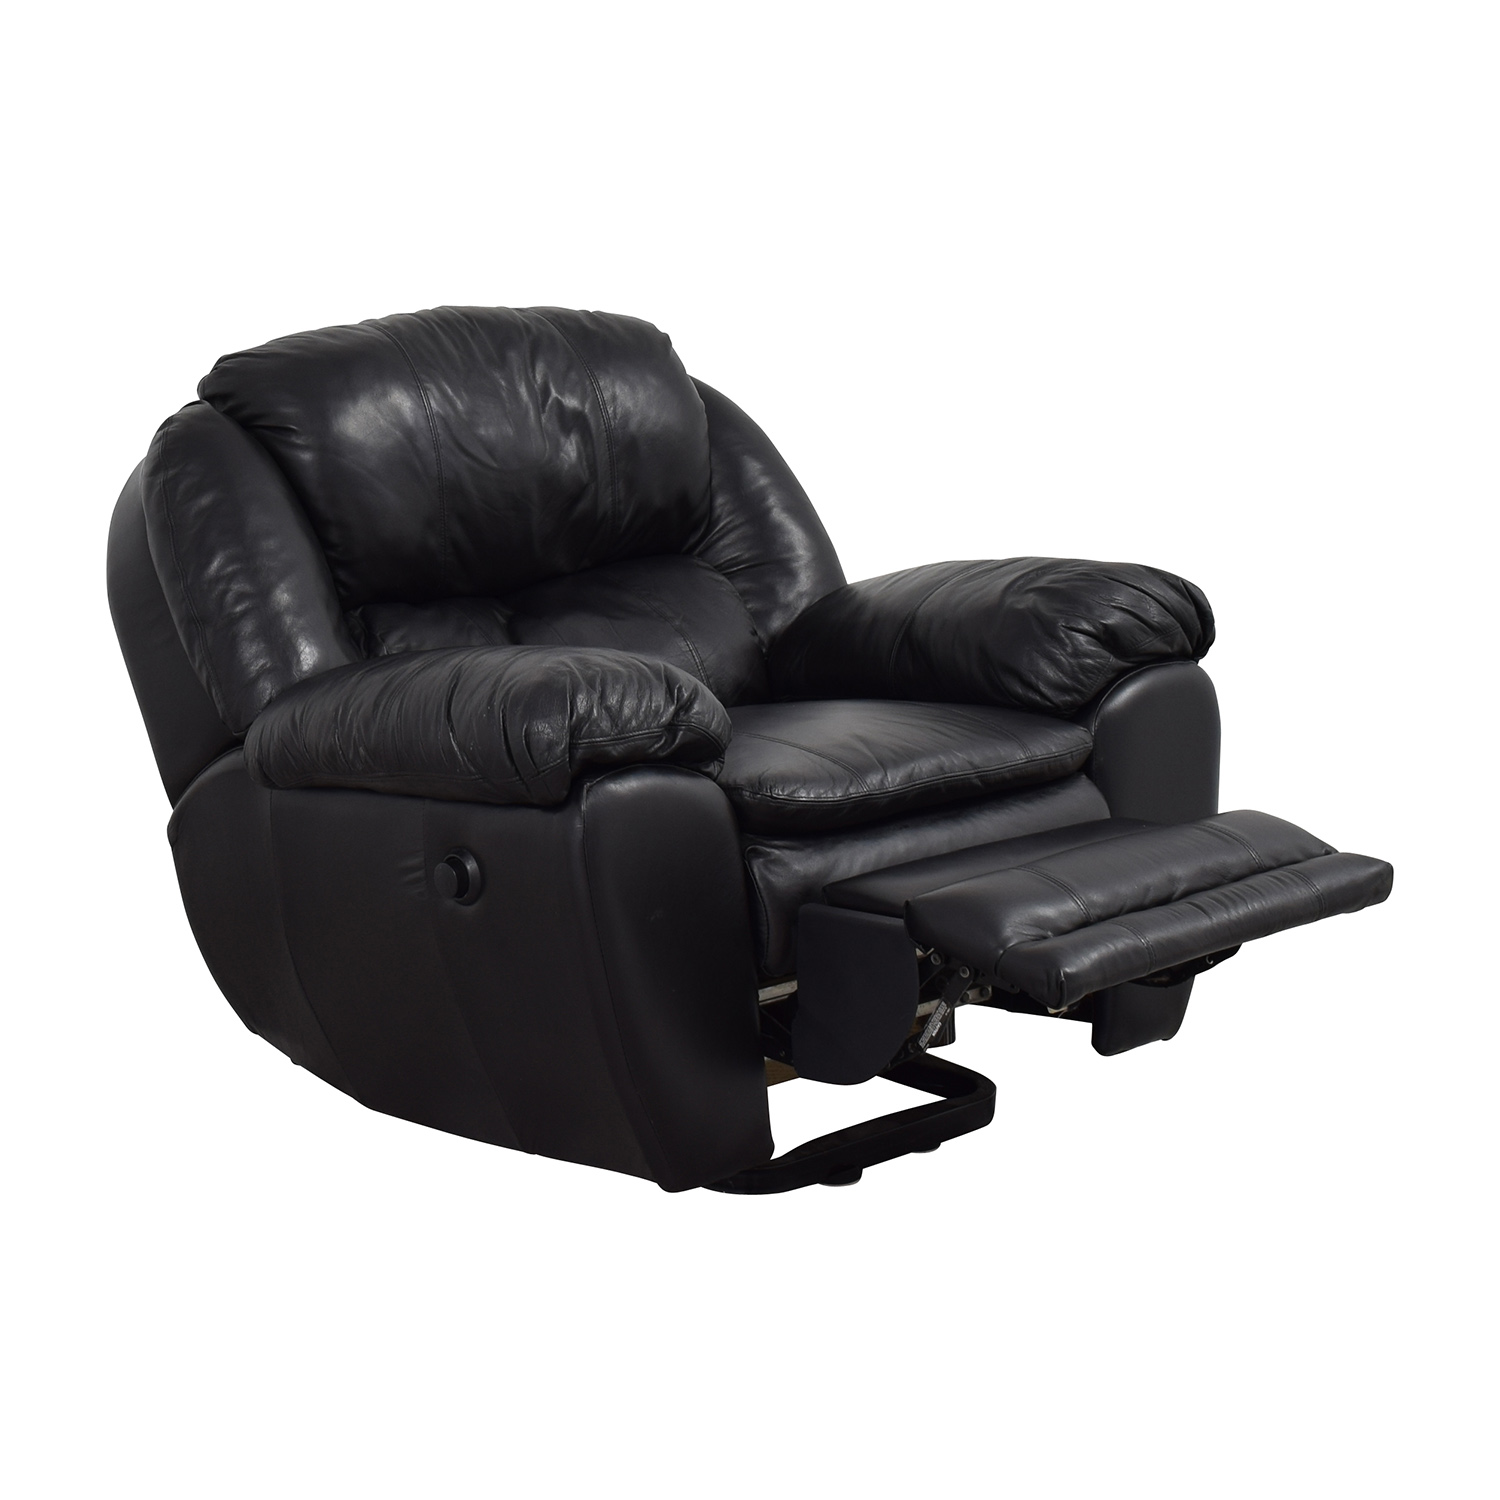 ... Berkline Berkline Black Leather Rocking Recliner Chairs ...